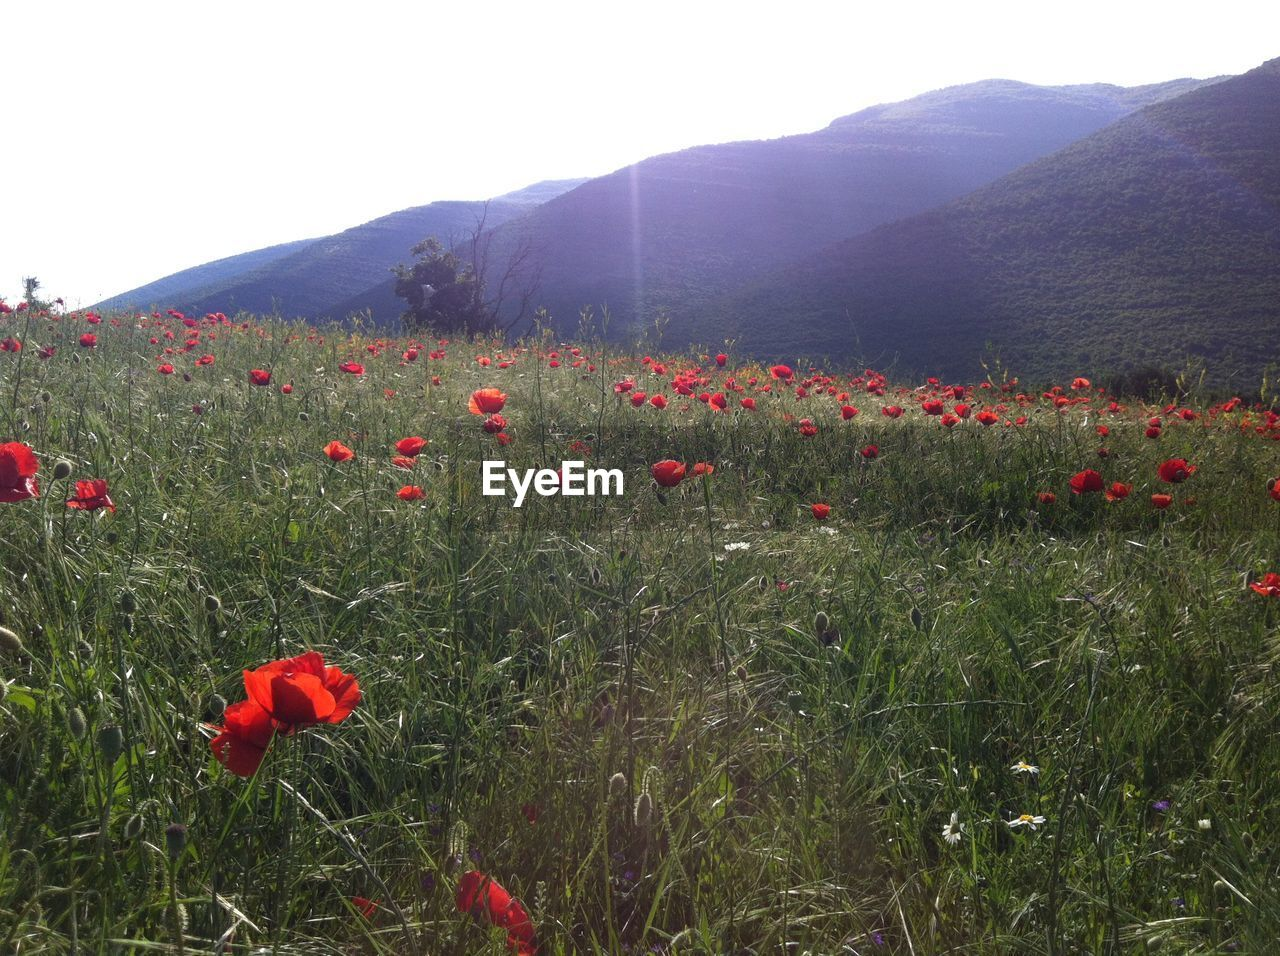 red, nature, flower, growth, poppy, field, beauty in nature, plant, mountain, no people, landscape, grass, tranquility, vegetation, outdoors, freshness, day, scenics, blooming, sky